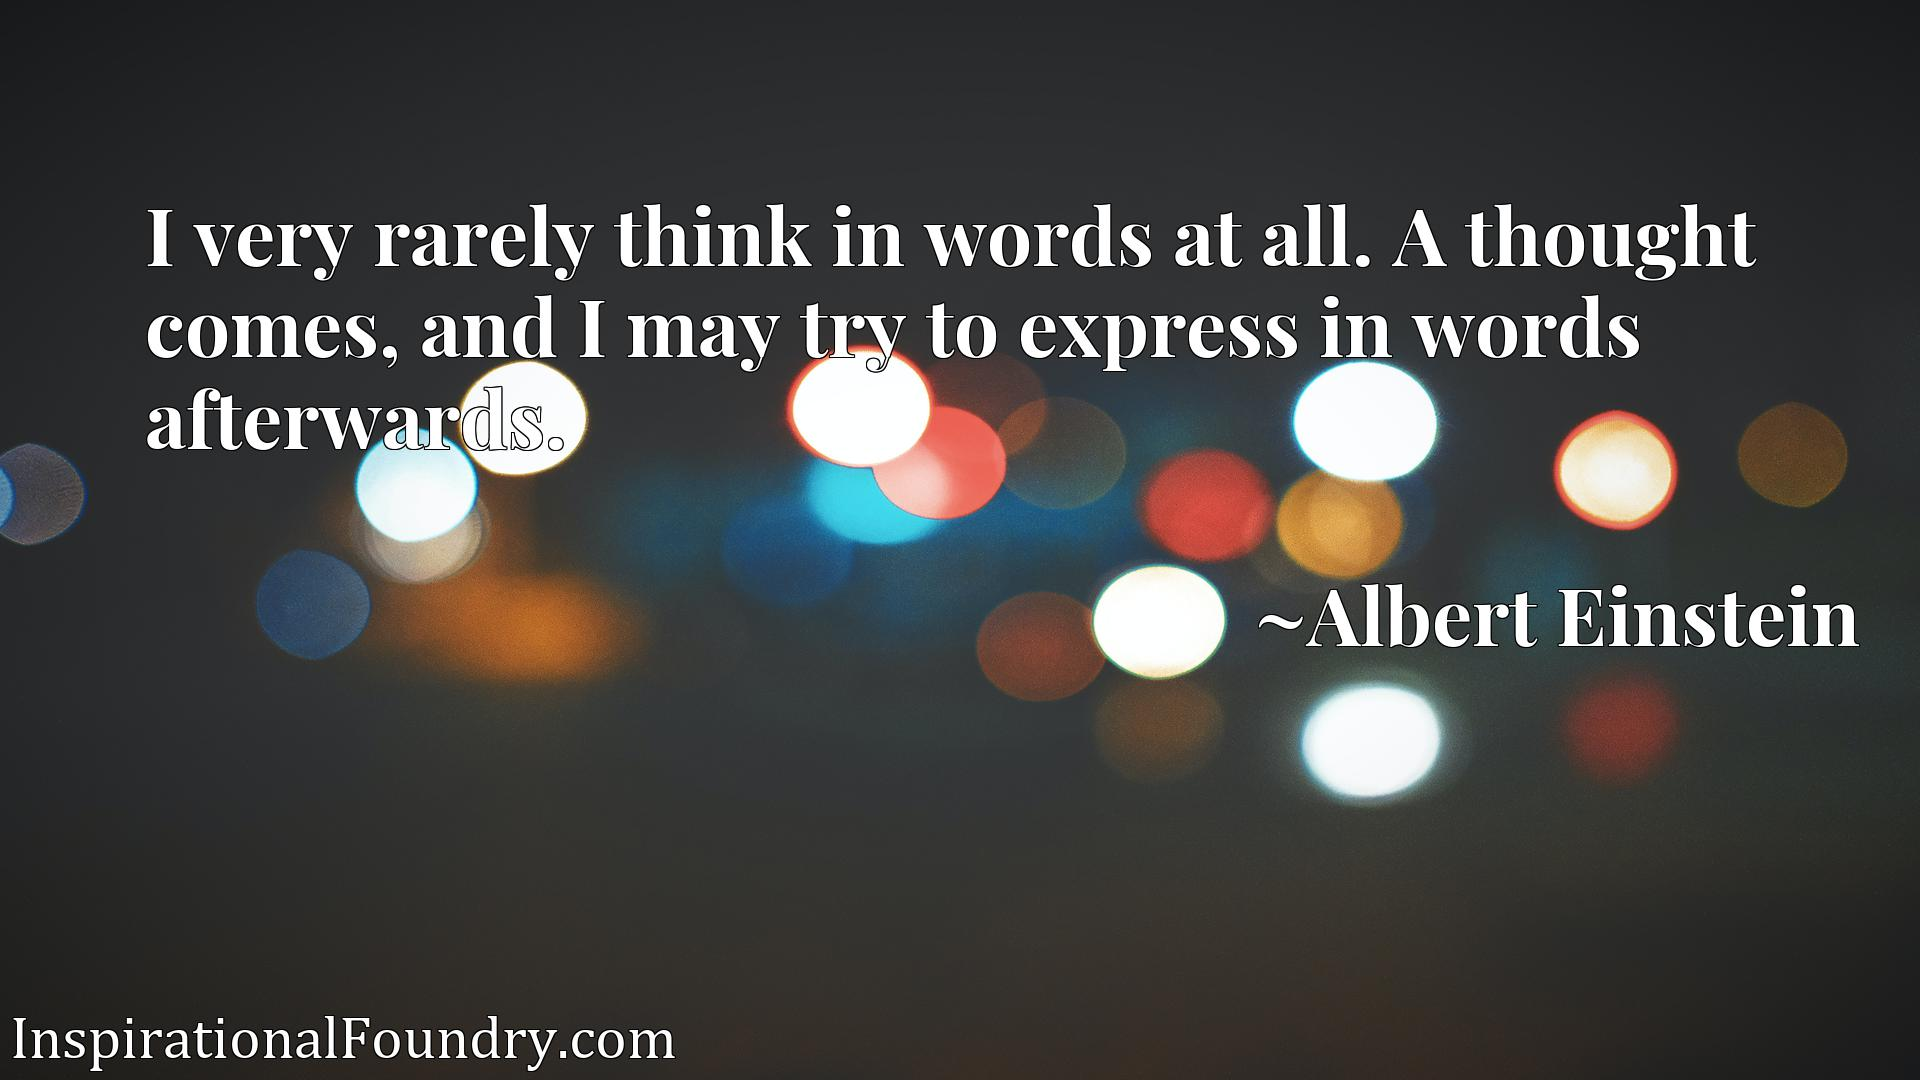 I very rarely think in words at all. A thought comes, and I may try to express in words afterwards.